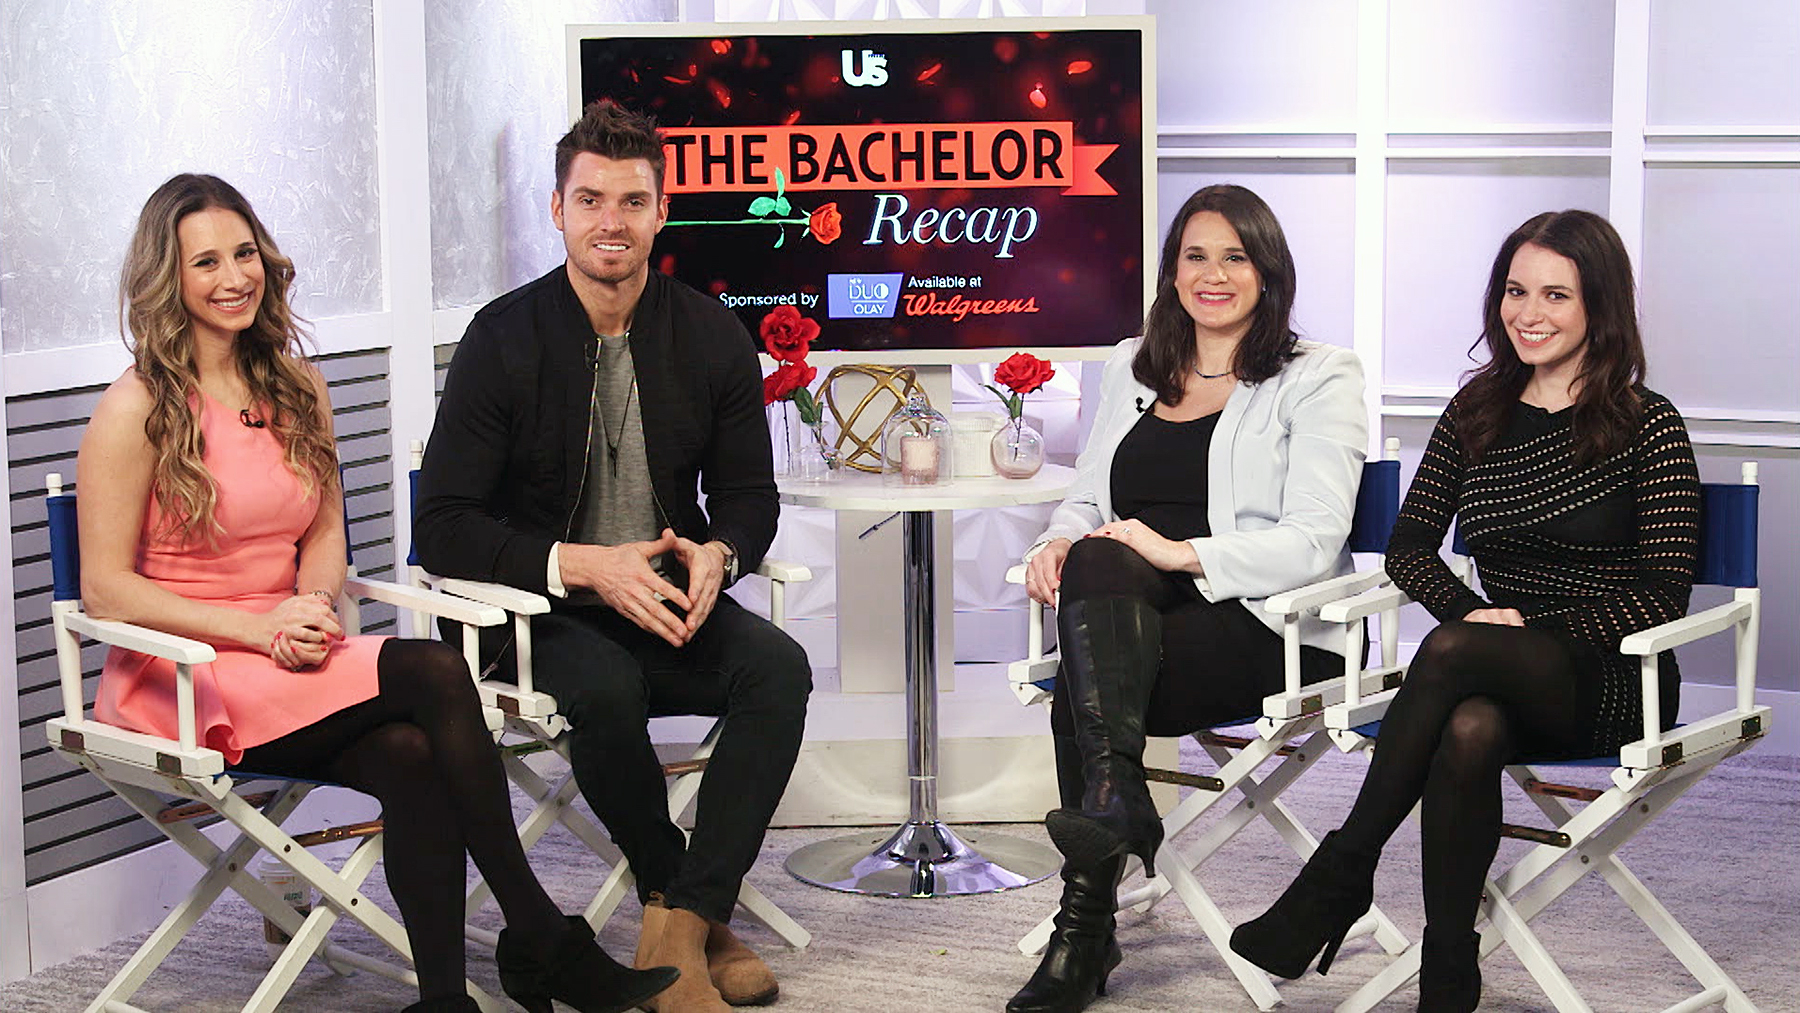 Luke Pell The Bachelor